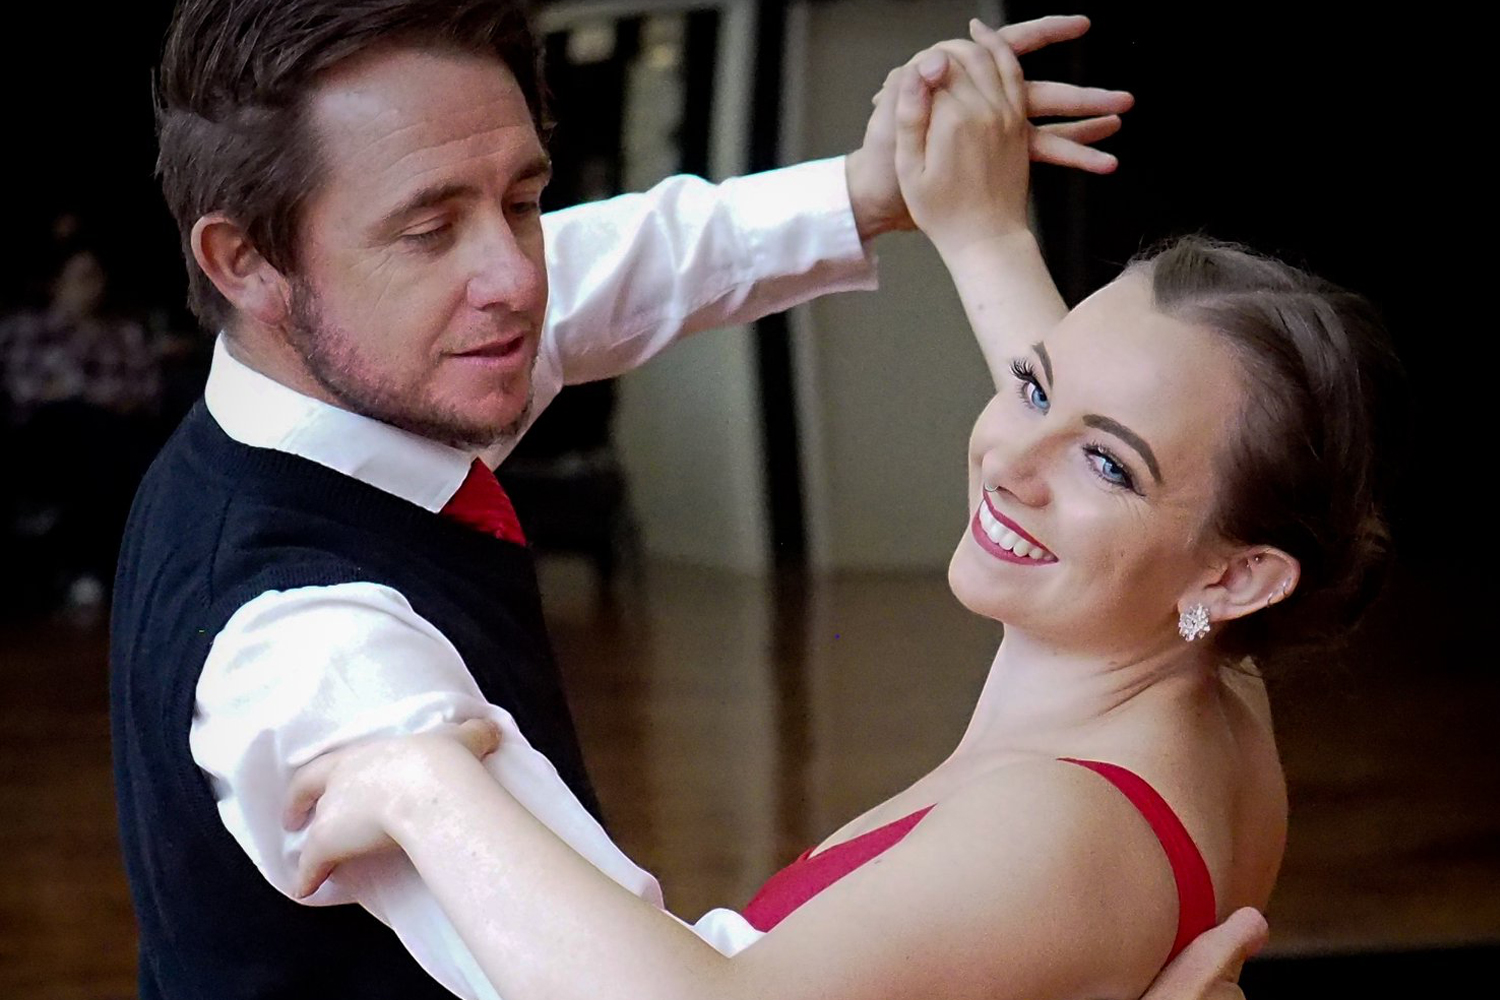 Adult Ballroom dance classes and private lessons